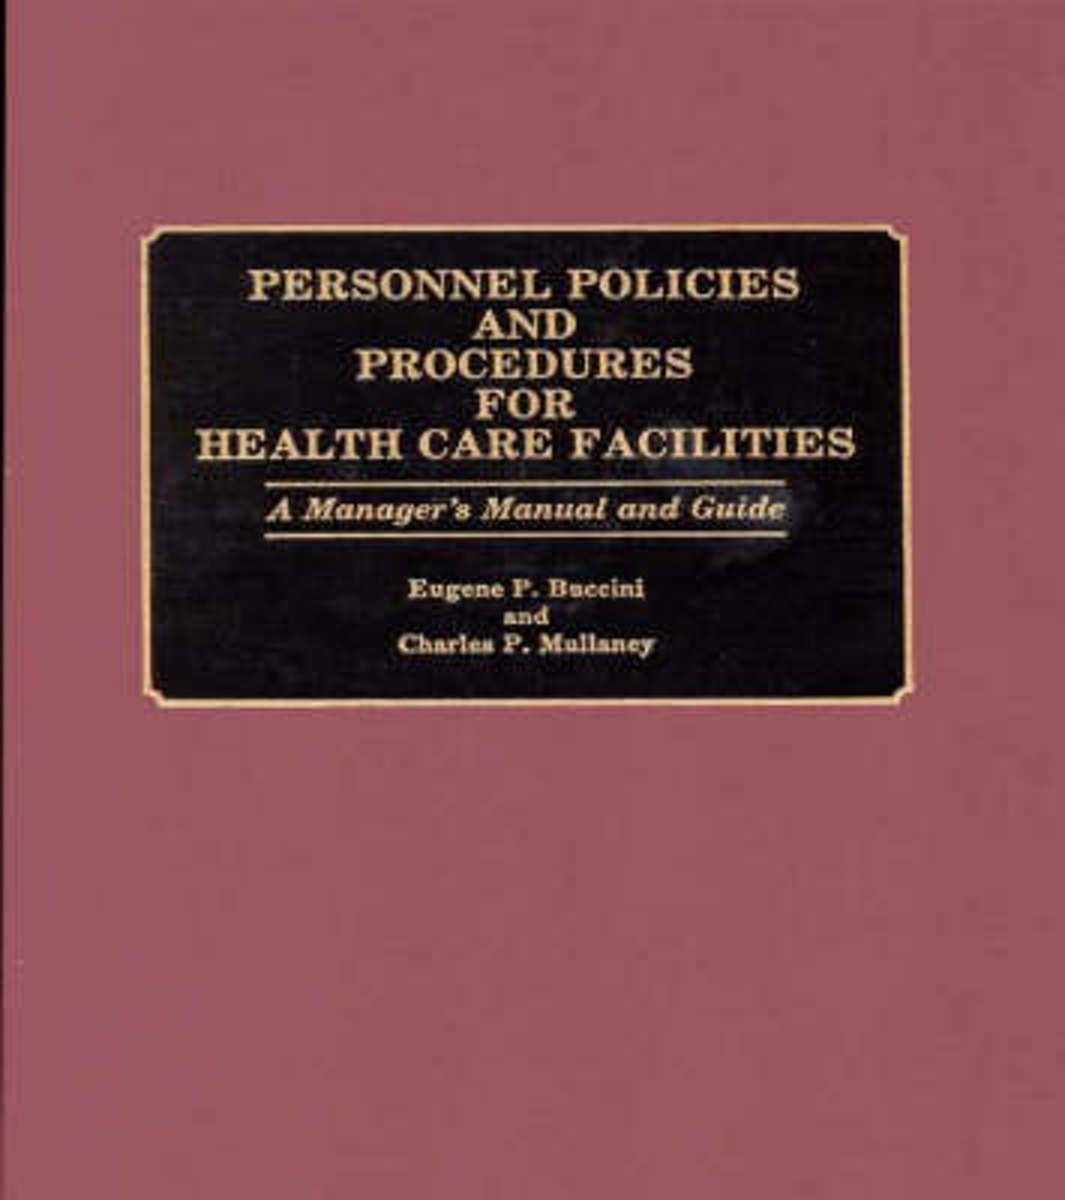 Personnel Policies and Procedures for Health Care Facilities